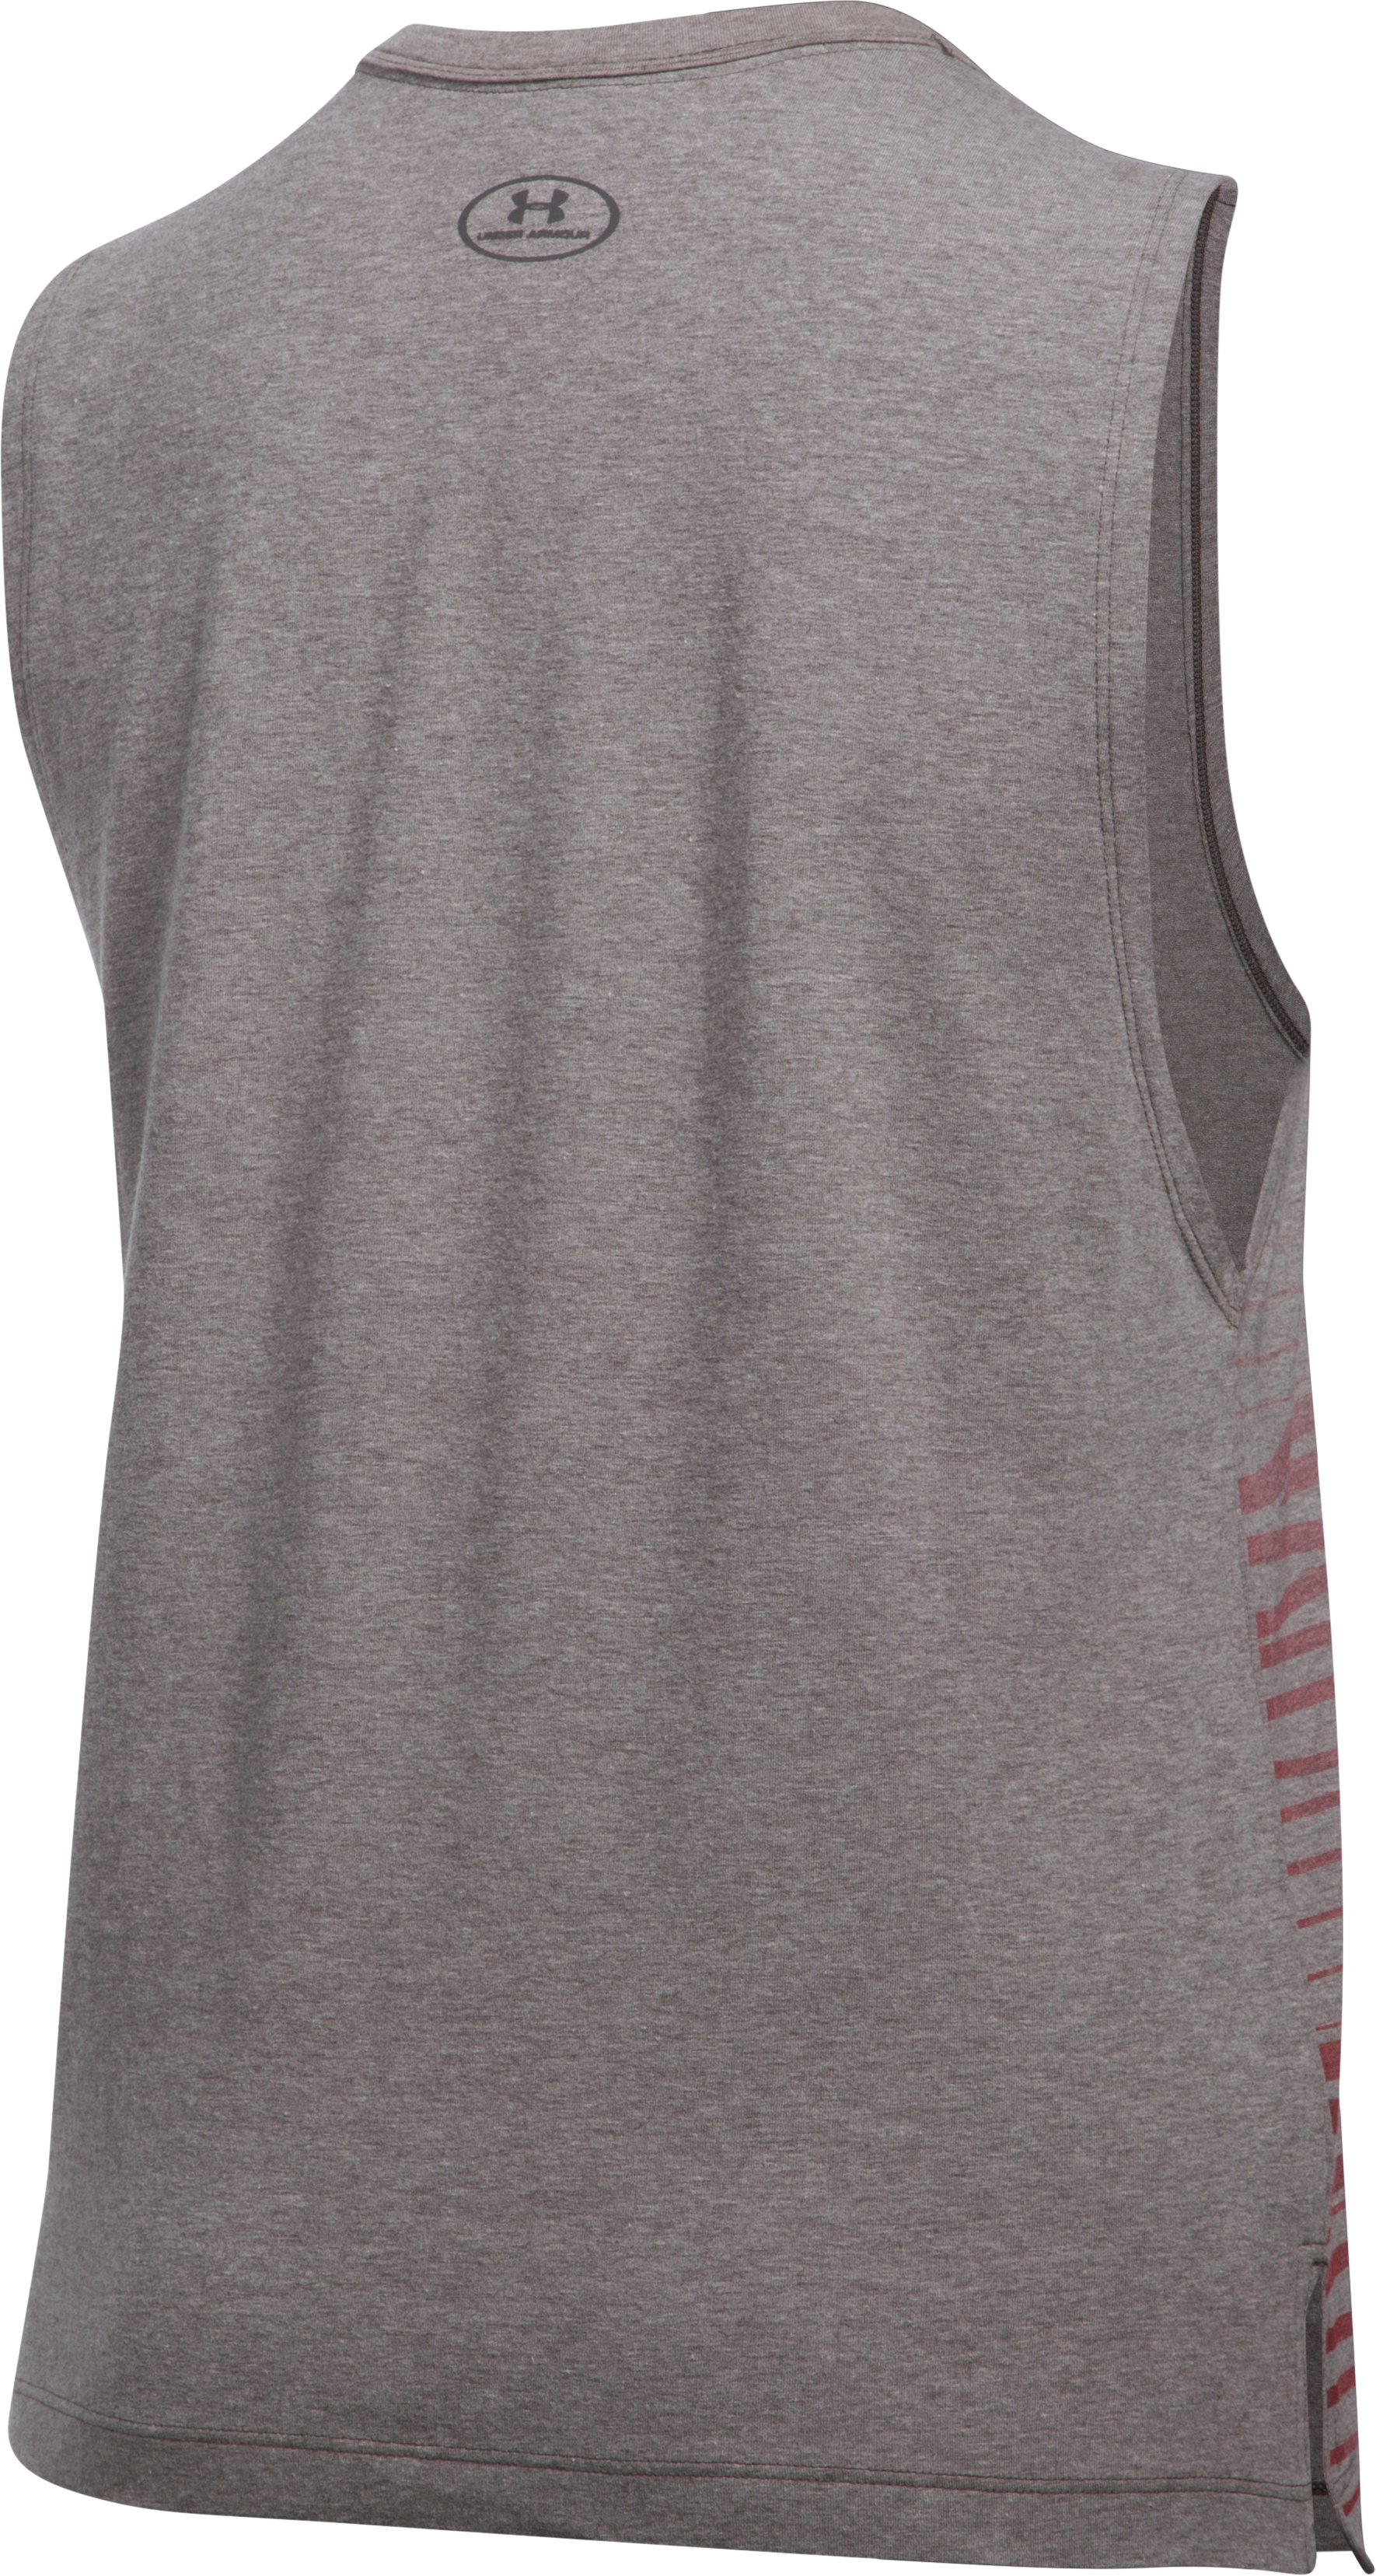 Women's Baywatch LG Stand Muscle T, Carbon Heather